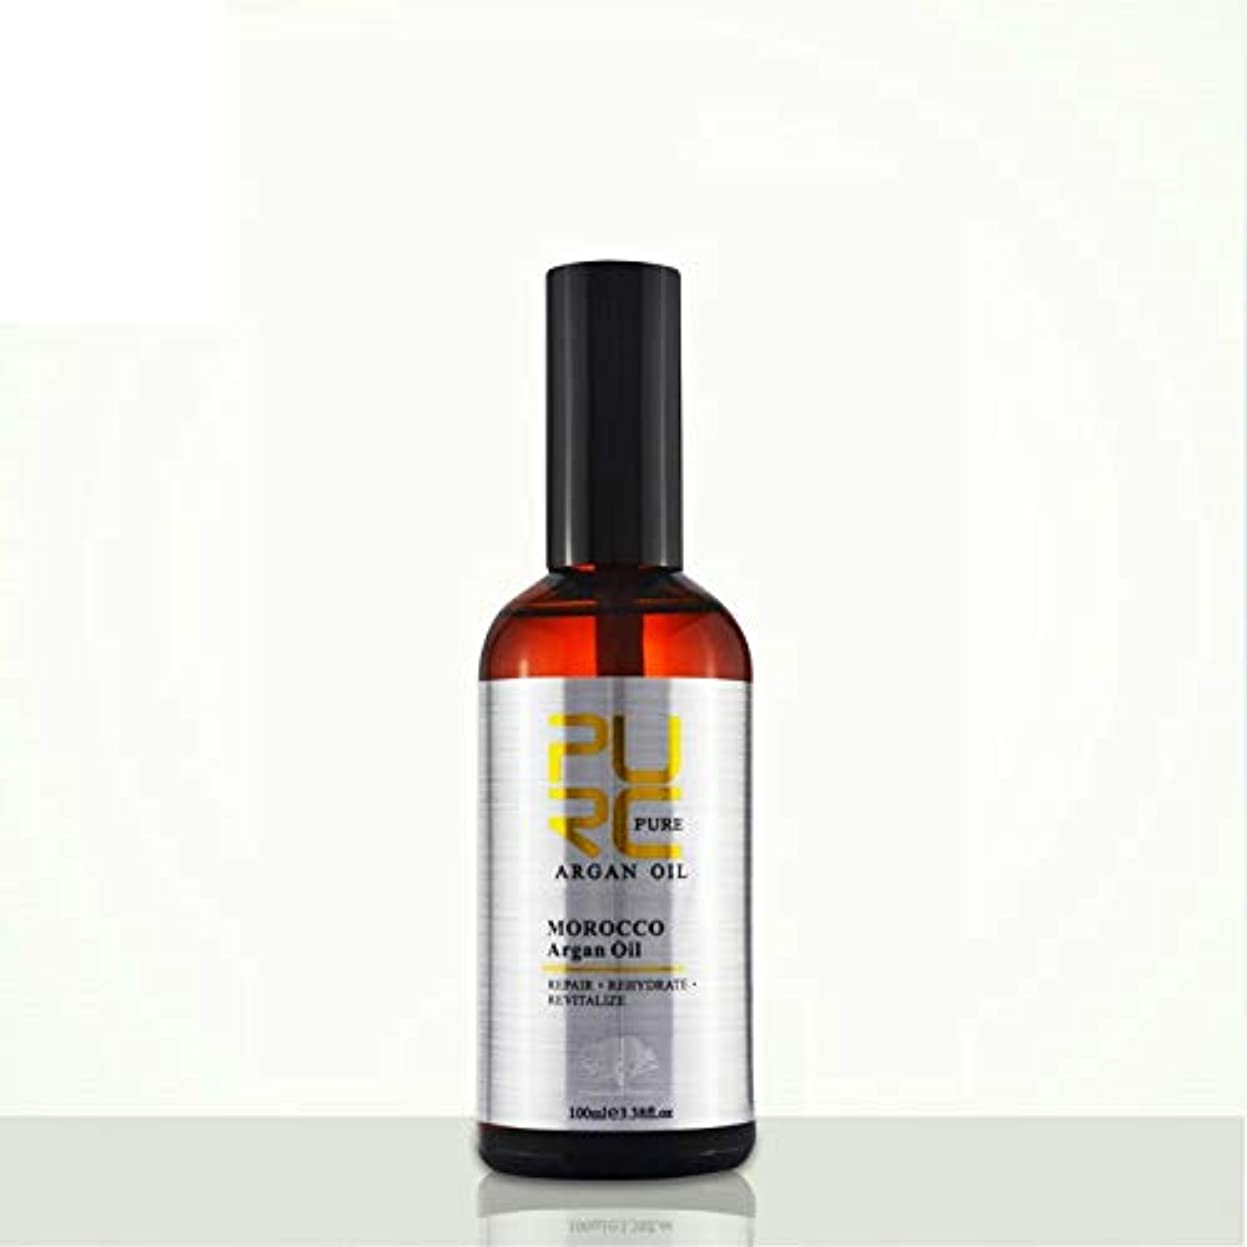 言語学叫び声解決PURC Moroccan argan oil for hair care and protects damaged hair for moisture hair 100ml hair salon products